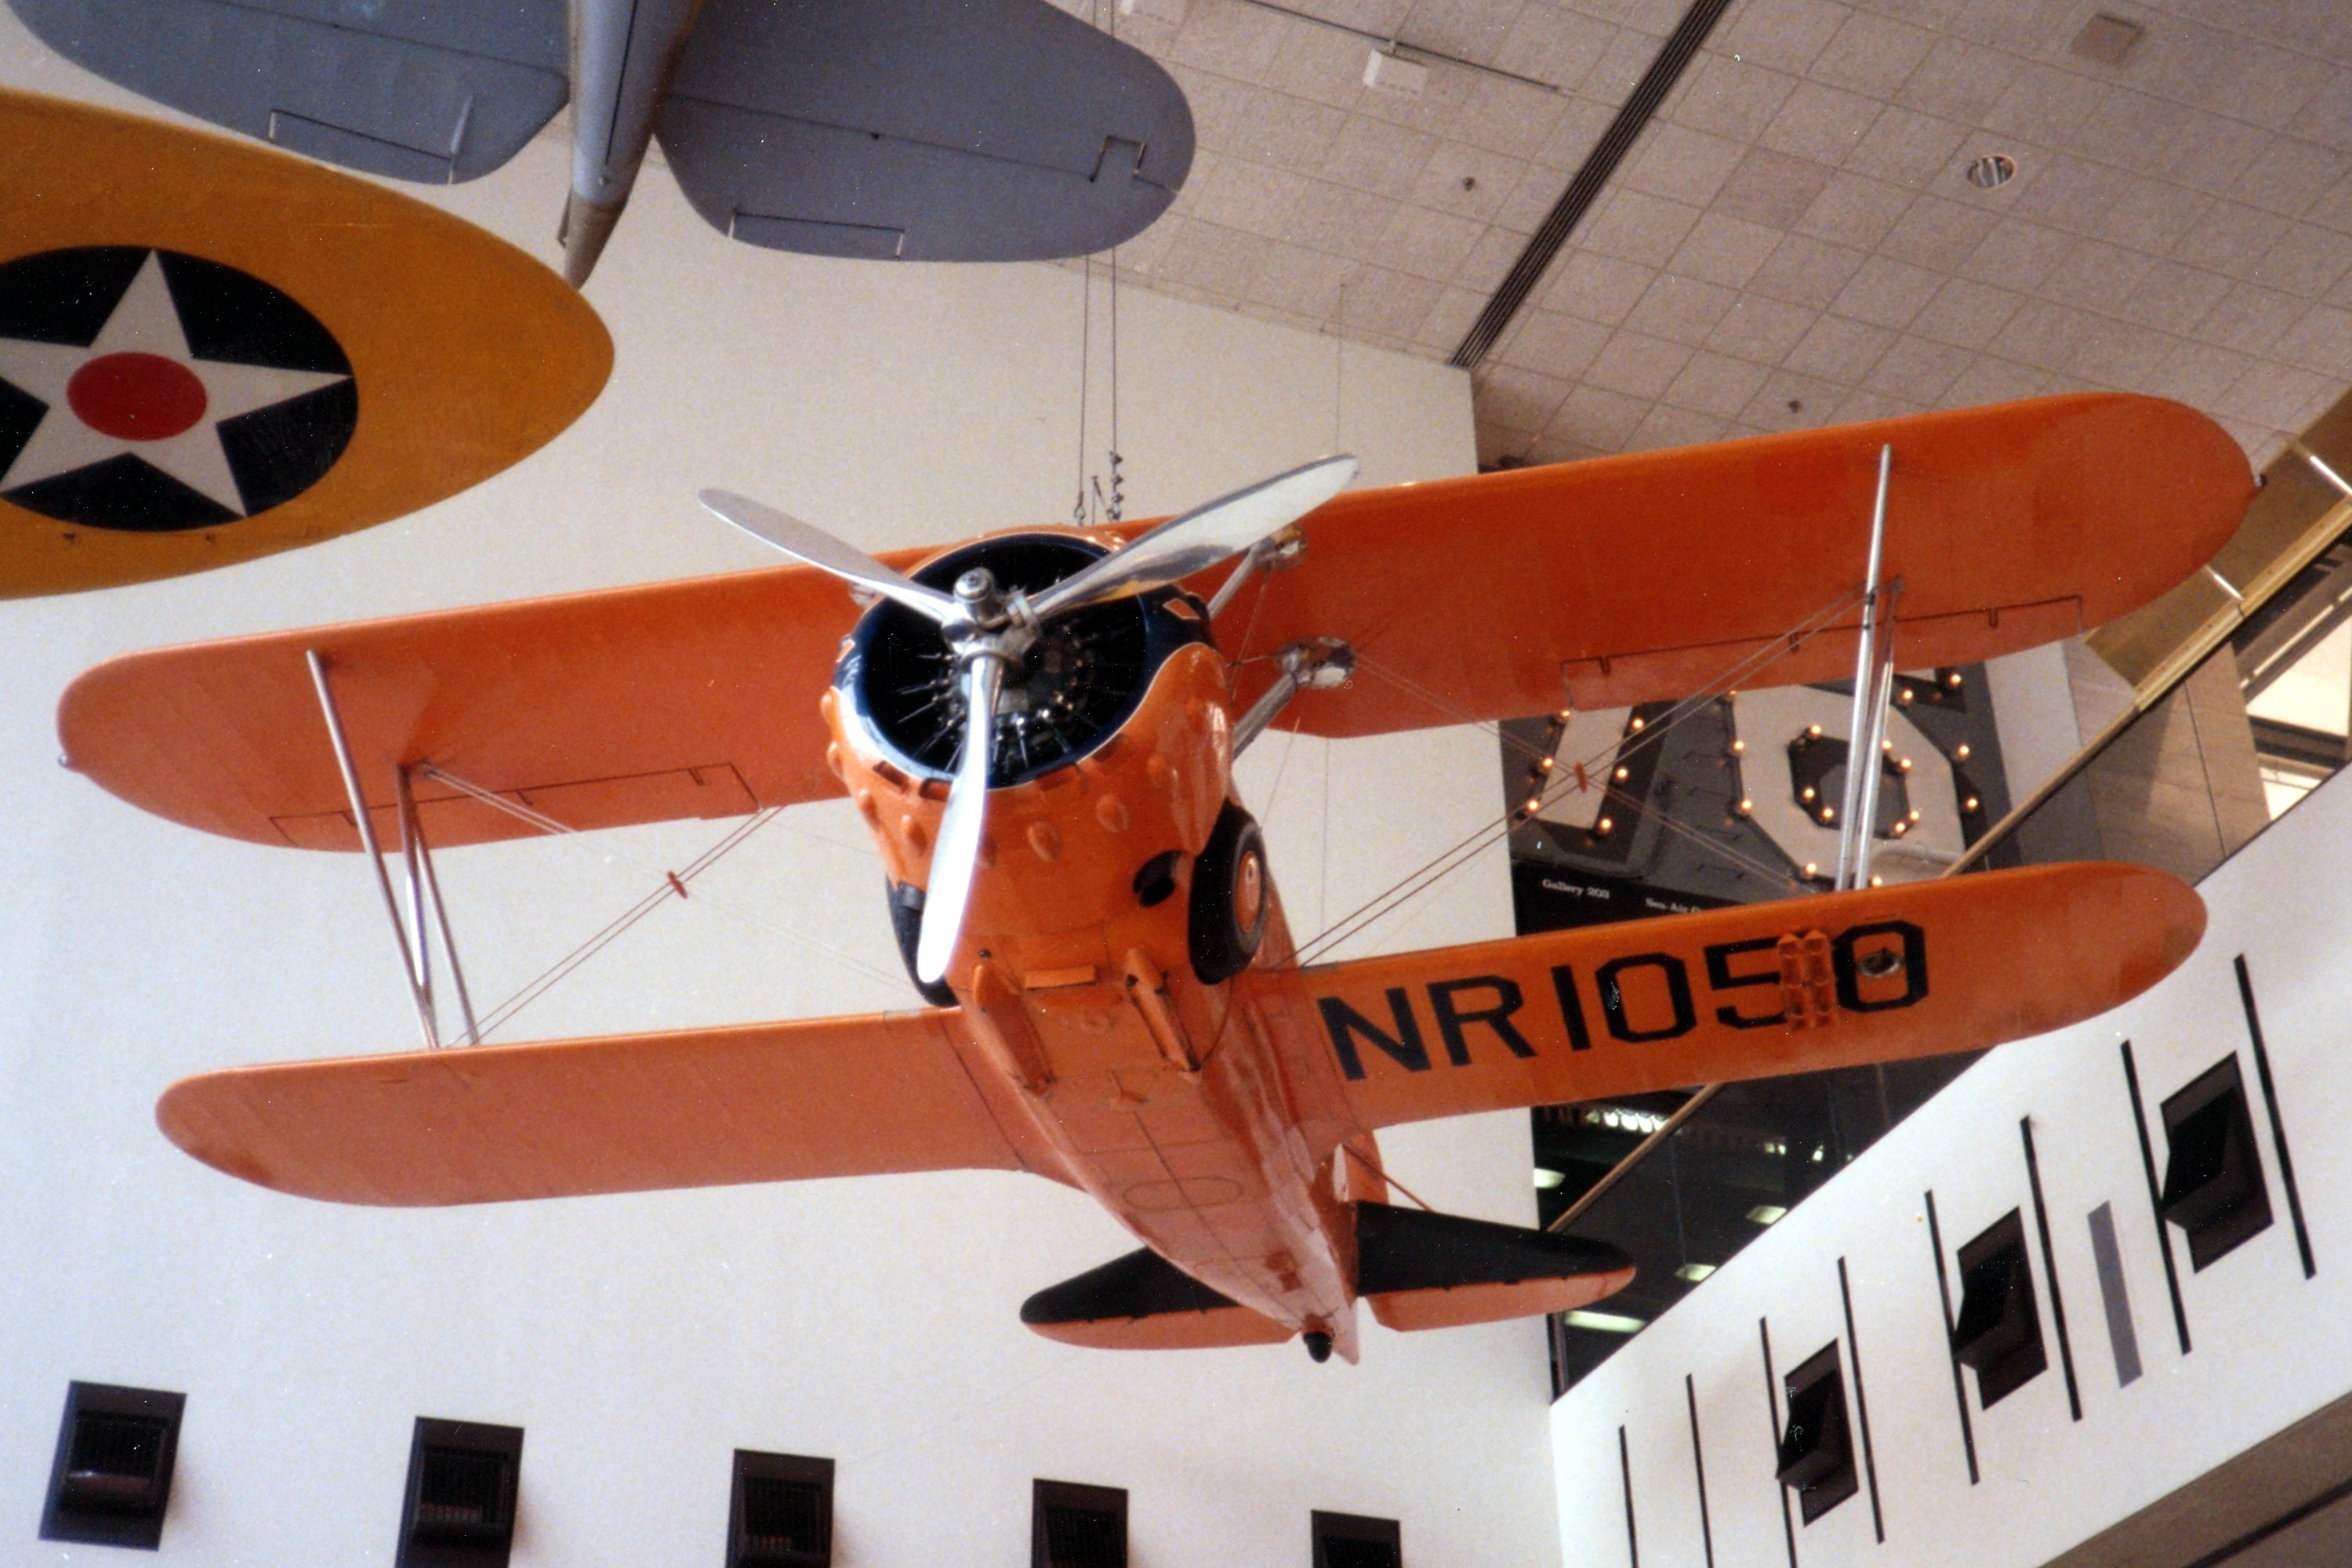 united states from space with Grumman G 22 on Grumman F6F 3 additionally dfchase likewise jymdavis besides nateshomemade moreover Photos.